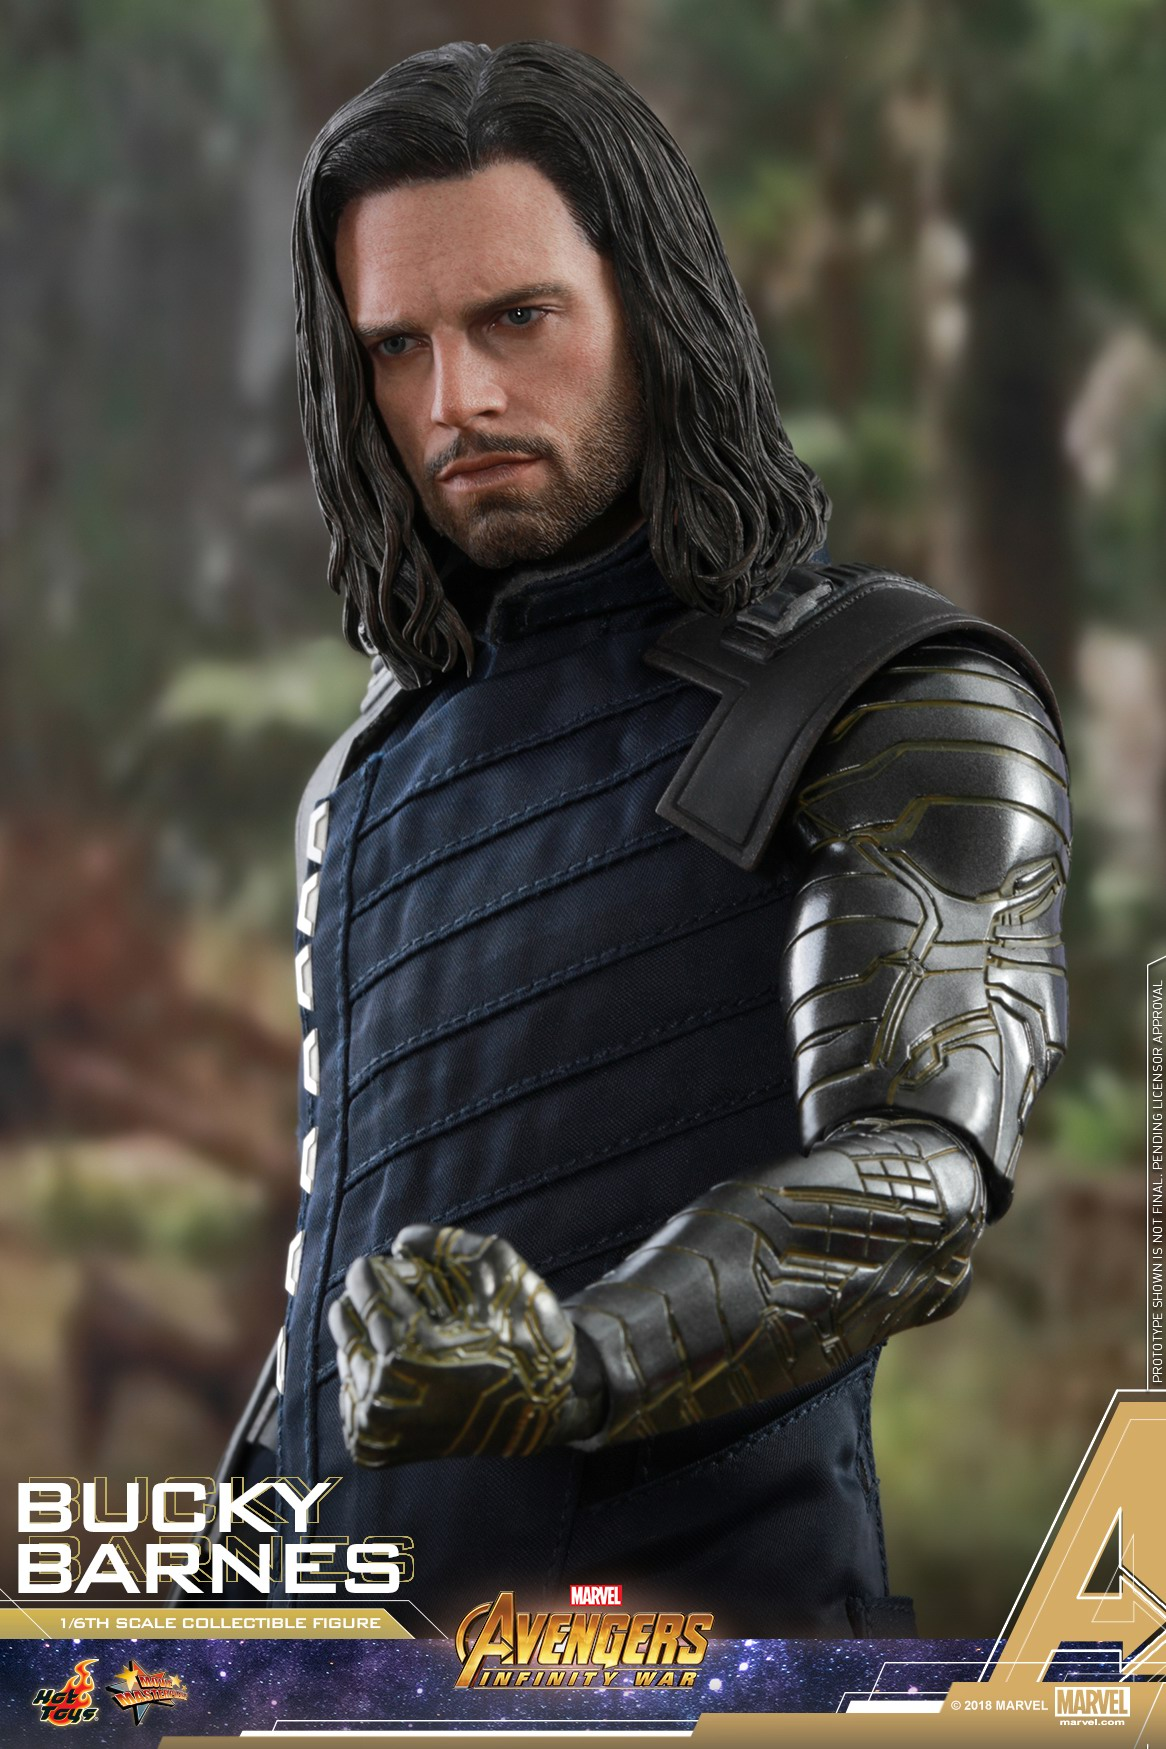 Hot-Toys-AIW-Bucky-Barnes-collectible-figure_PR10.jpg